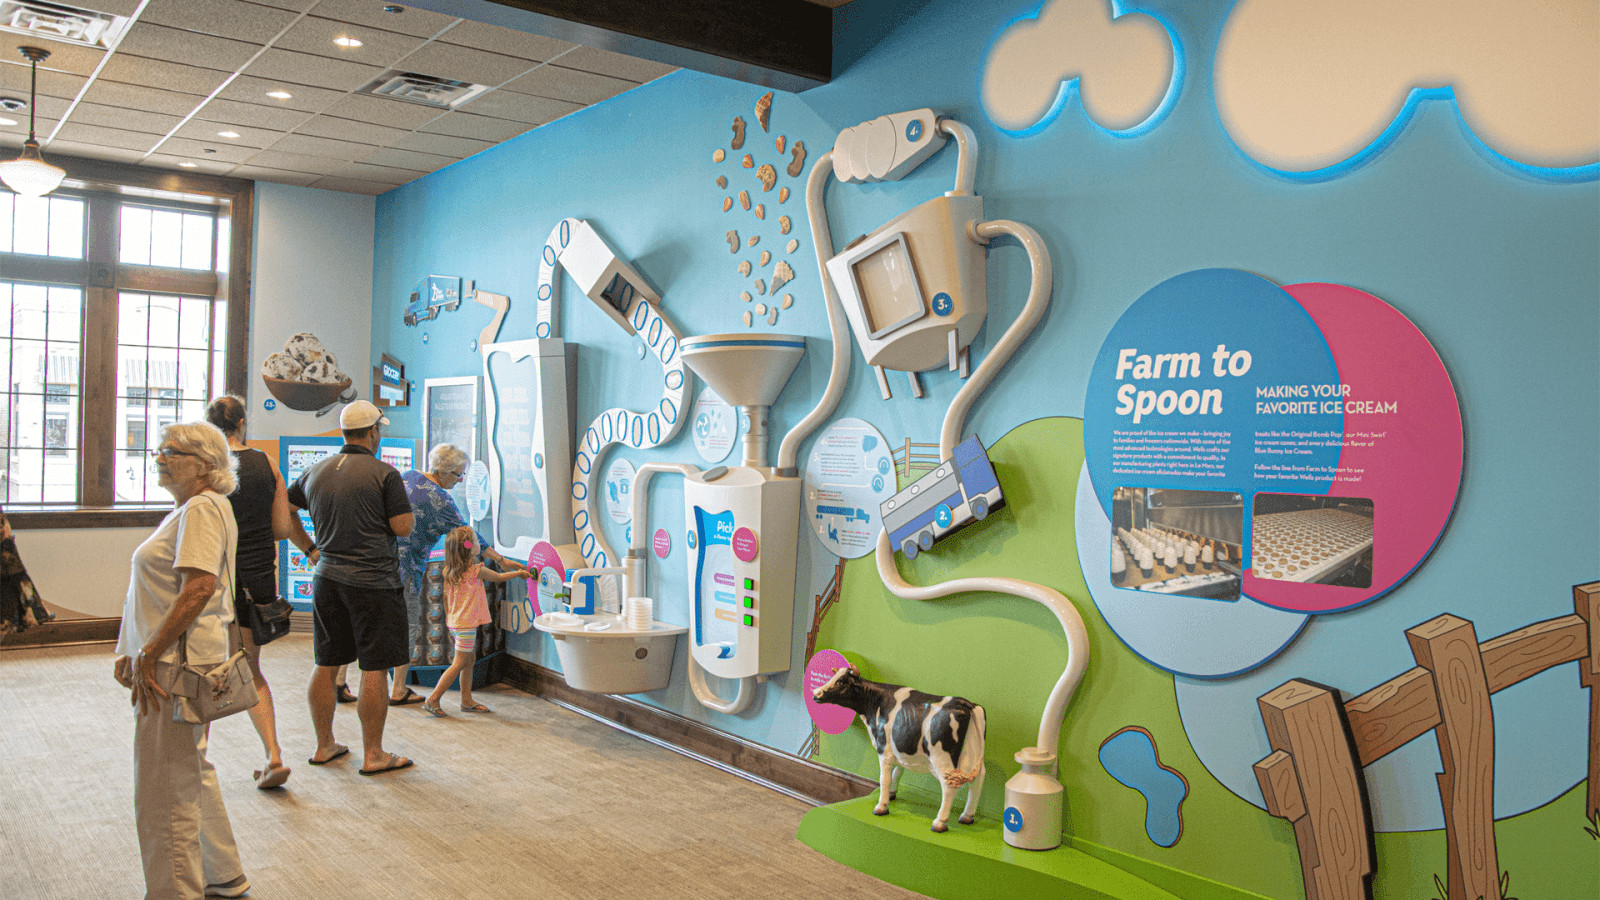 Wall showing ice cream production process